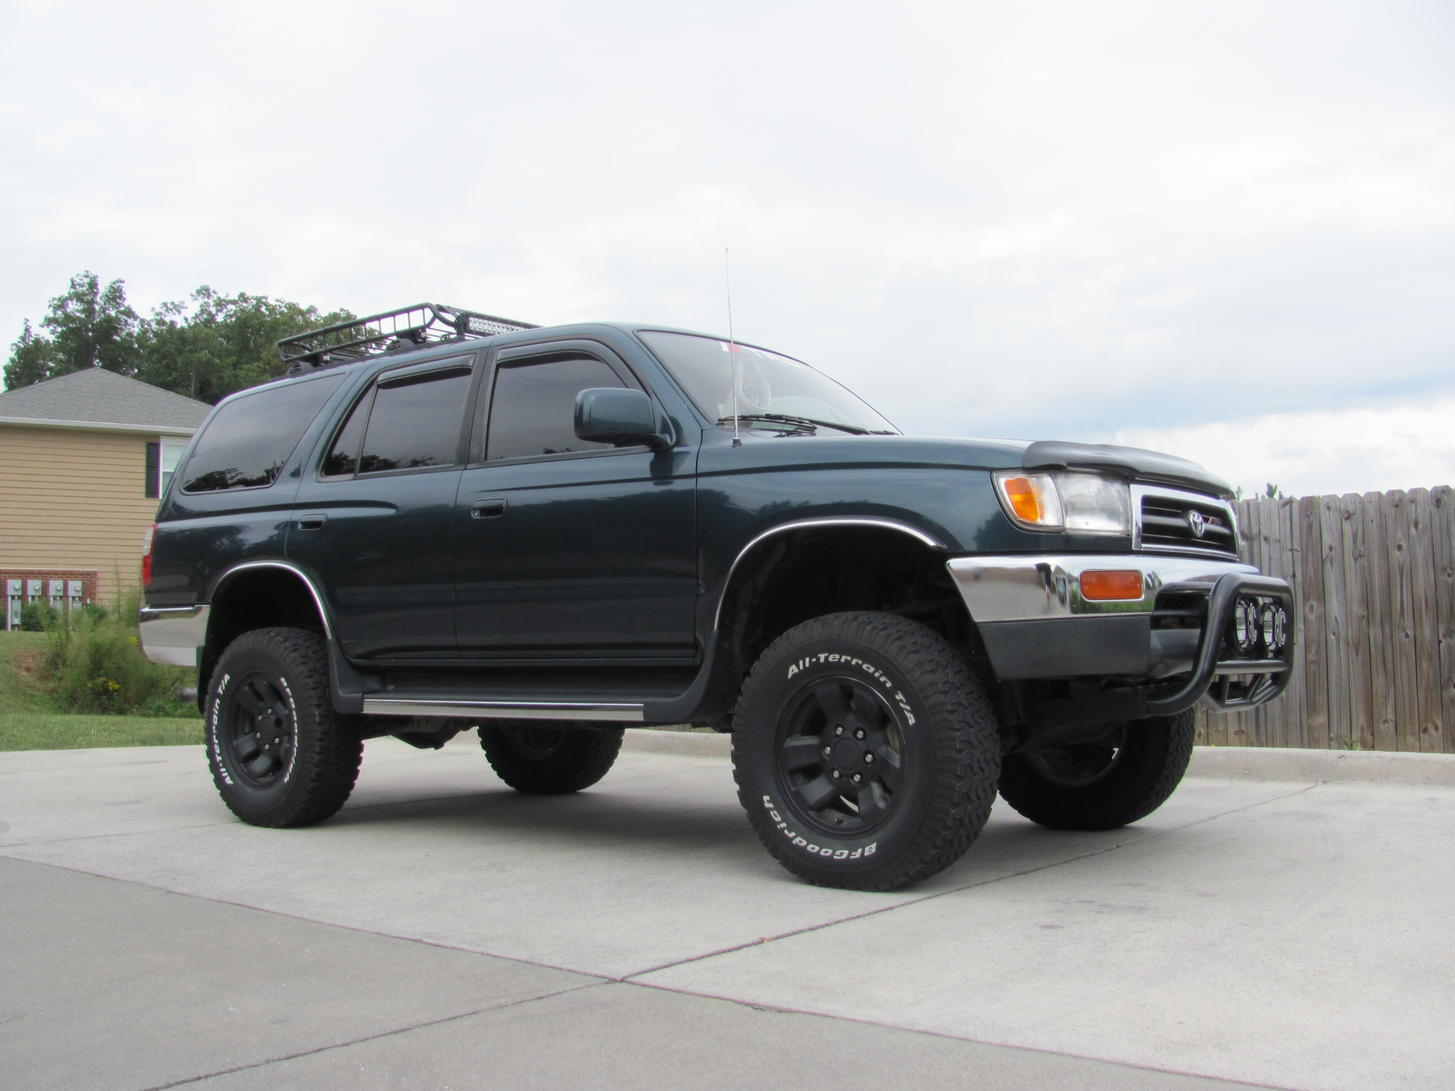 Lifted 4runner For Sale >> Clean Lifted 98 4runner For Sale Toyota 4runner Forum